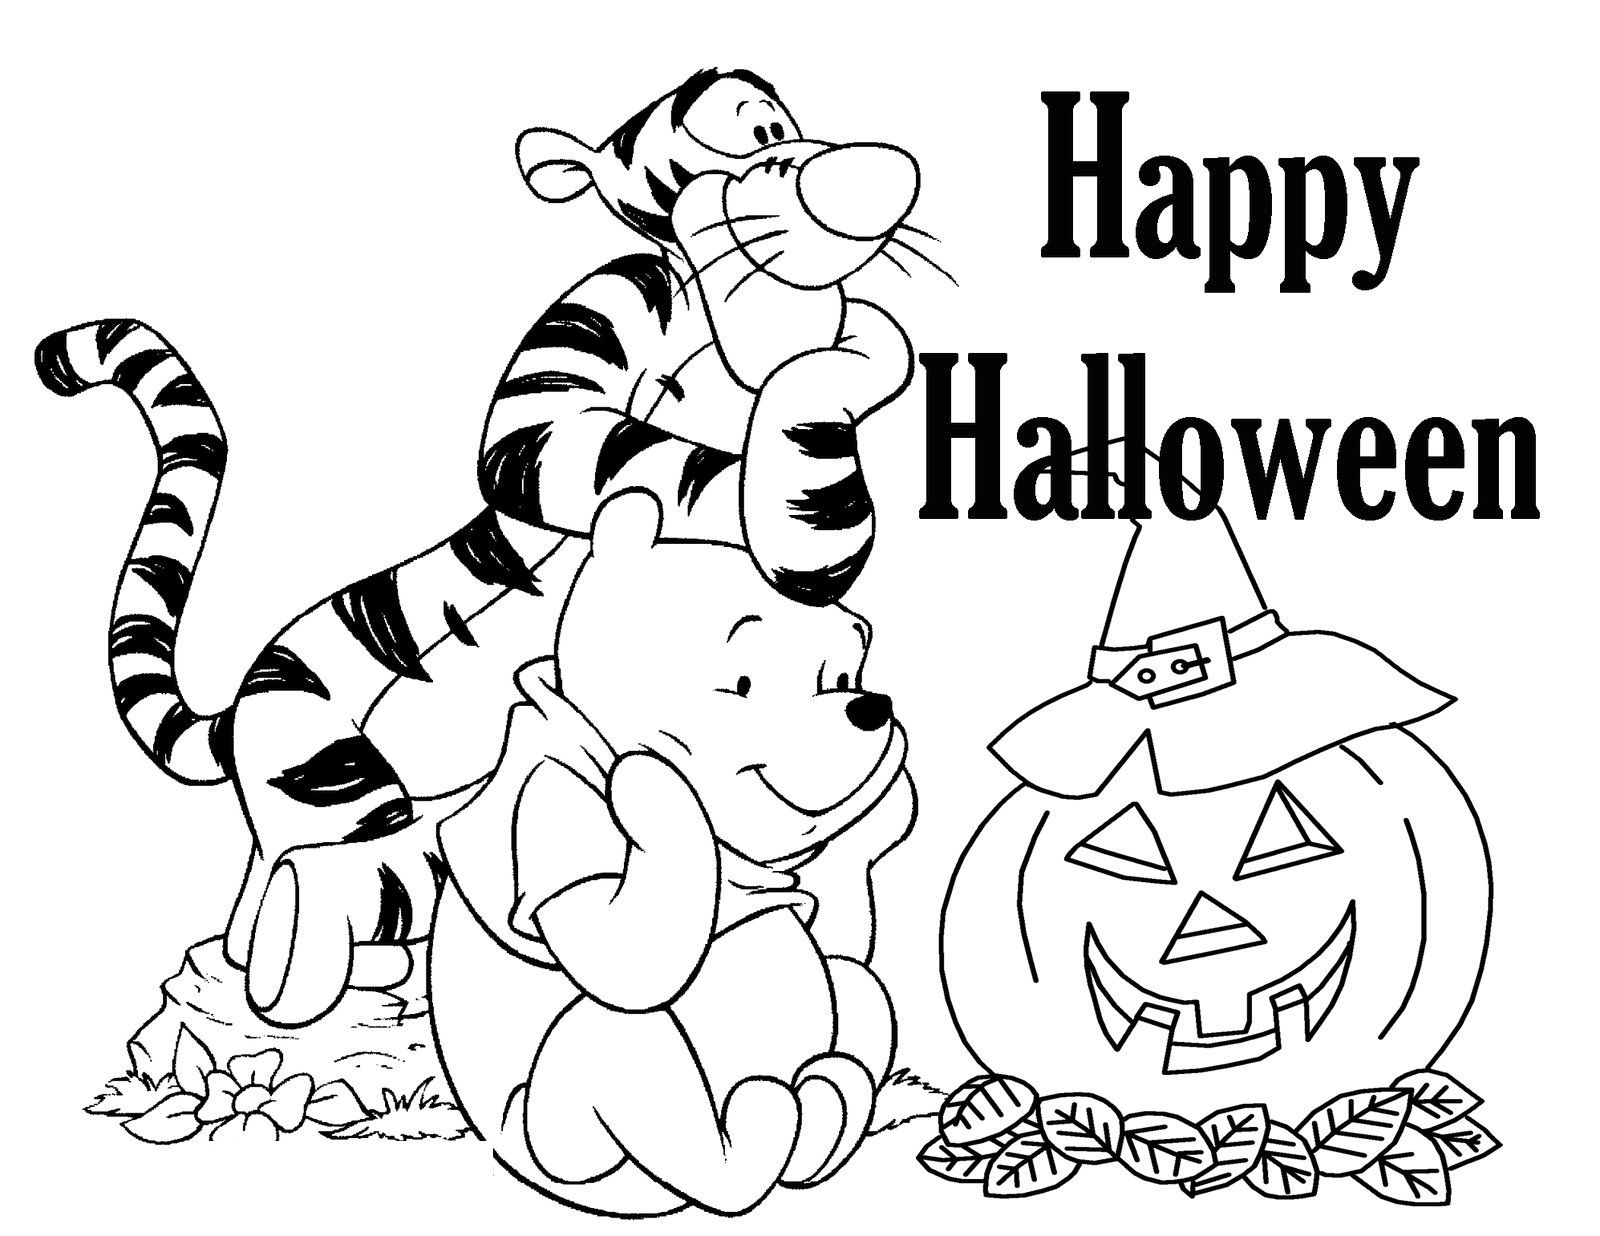 Halloween Cartoon Character Coloring Pages Halloween Coloring Pages Halloween Coloring Sheets Halloween Coloring Pages Printable